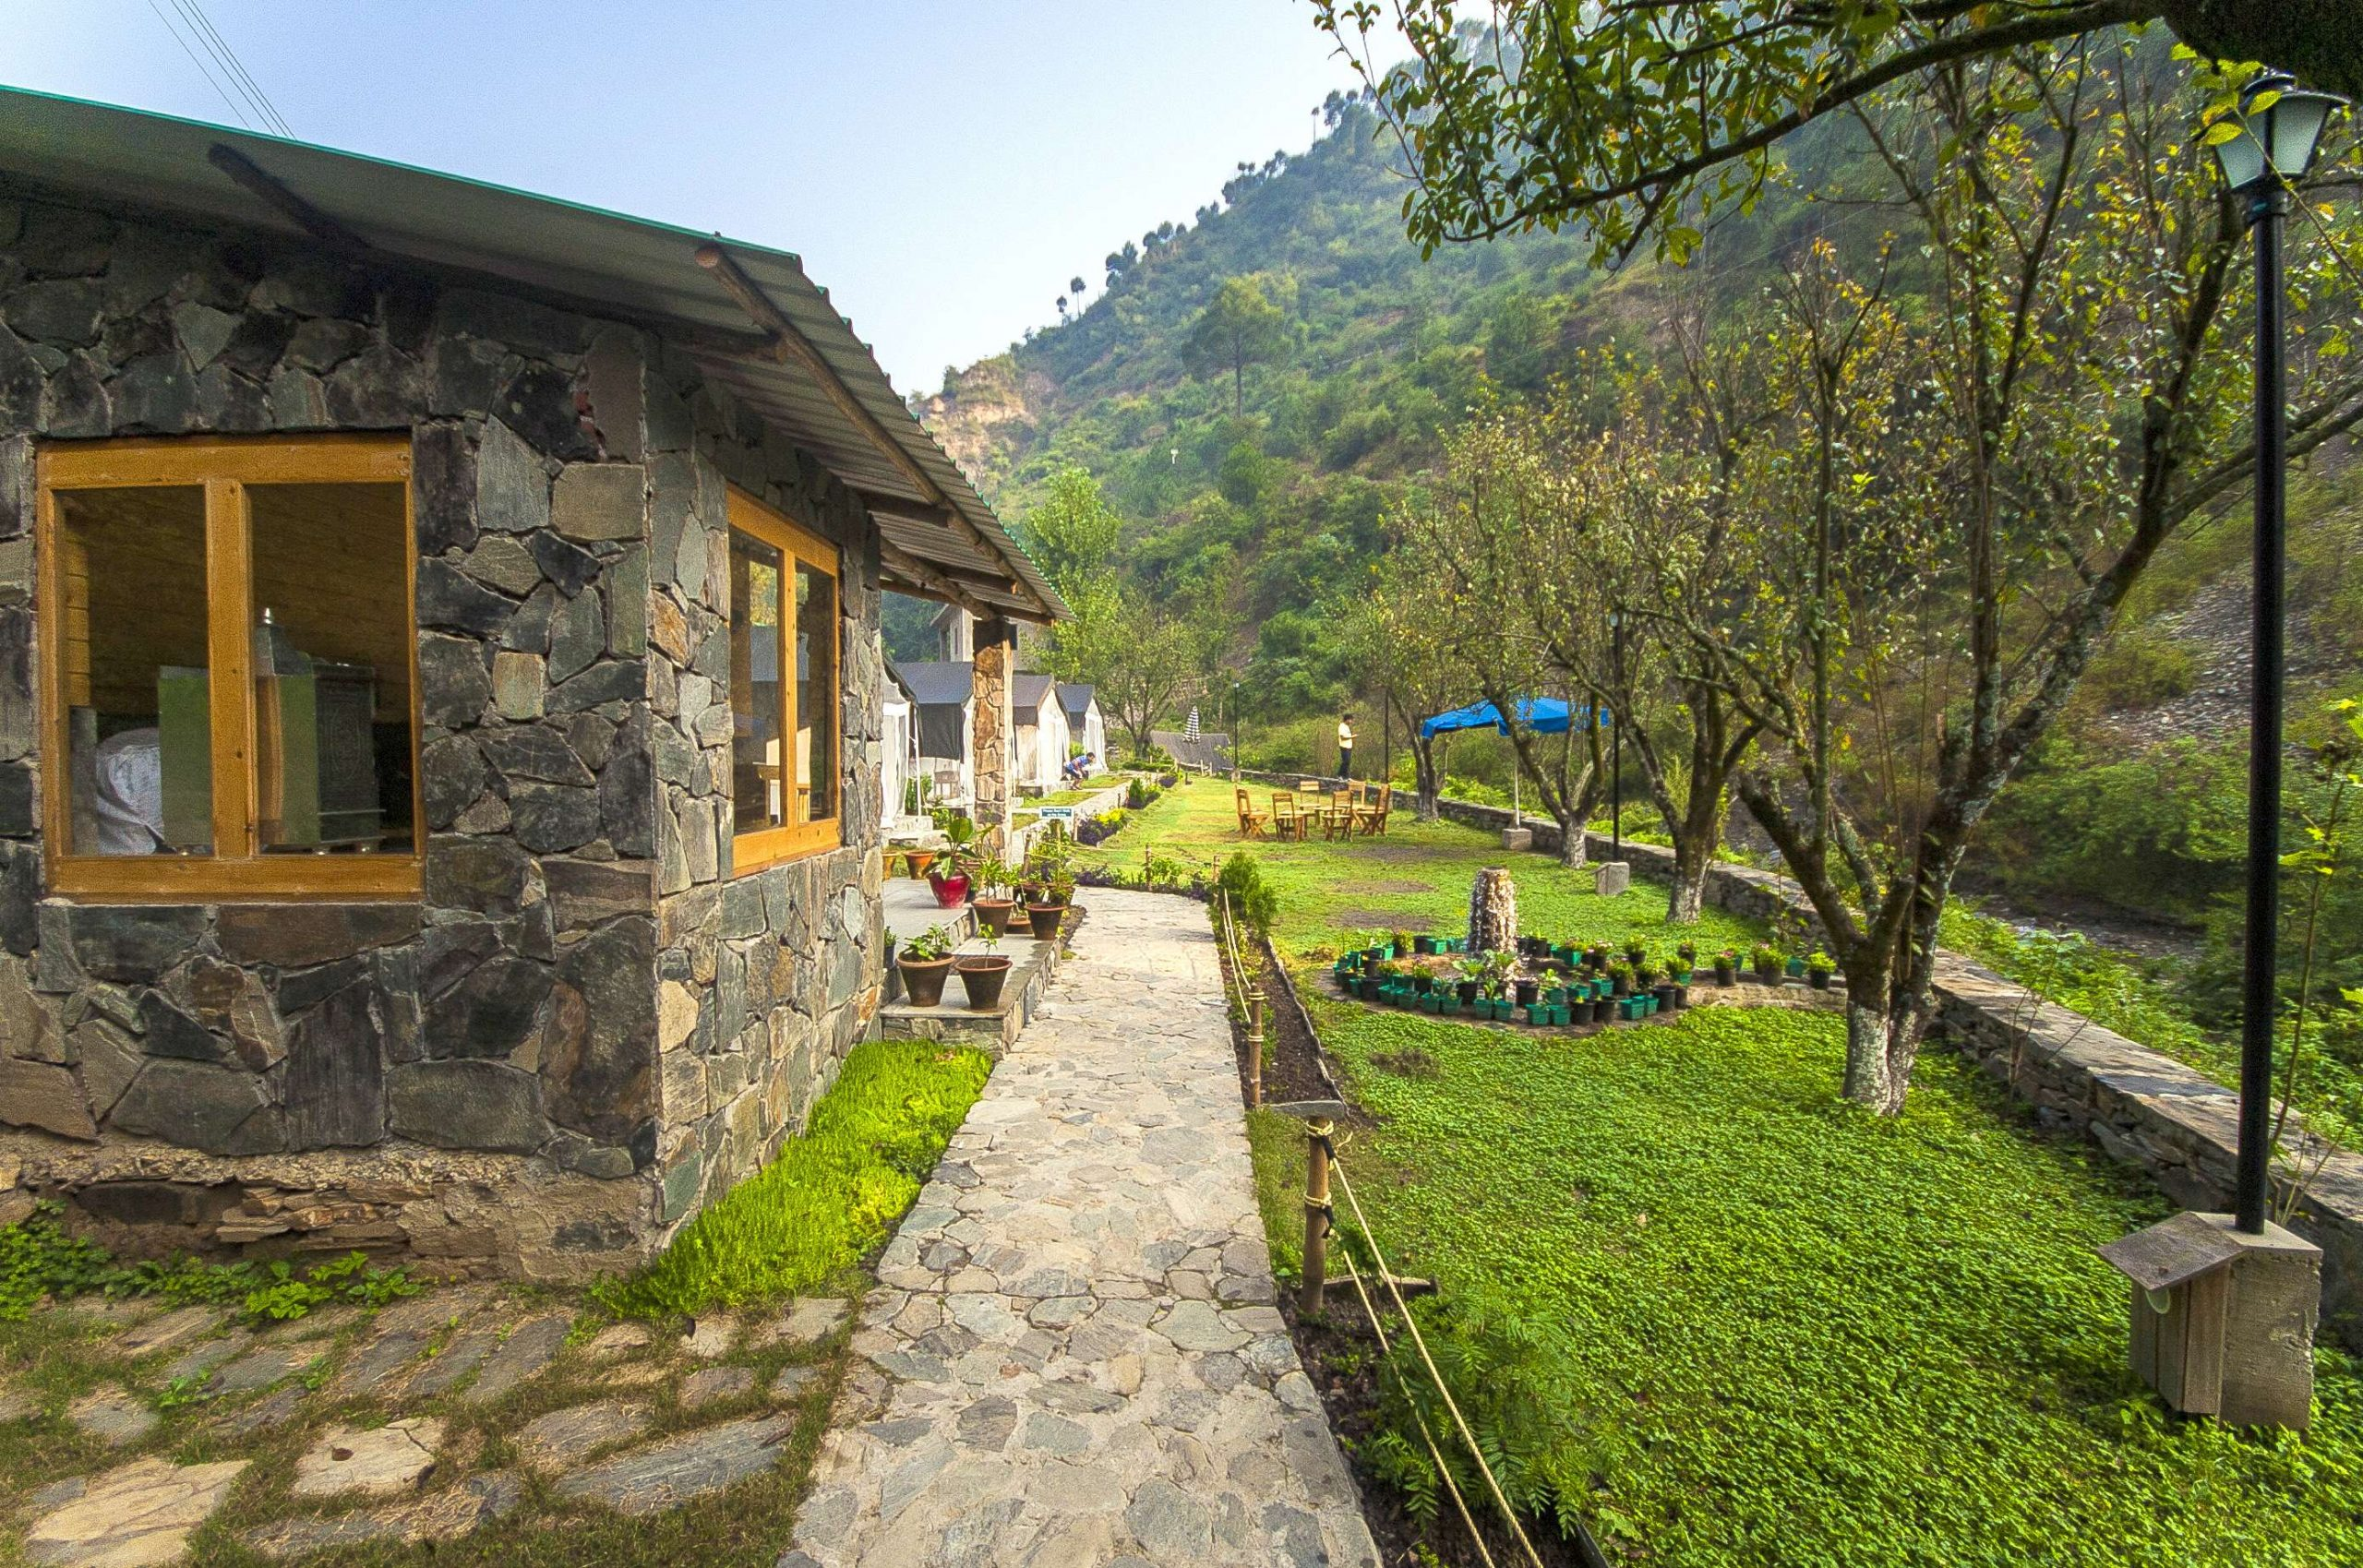 Best Visiting Place And Things To Do In Shoghi-Camping in Shoghi